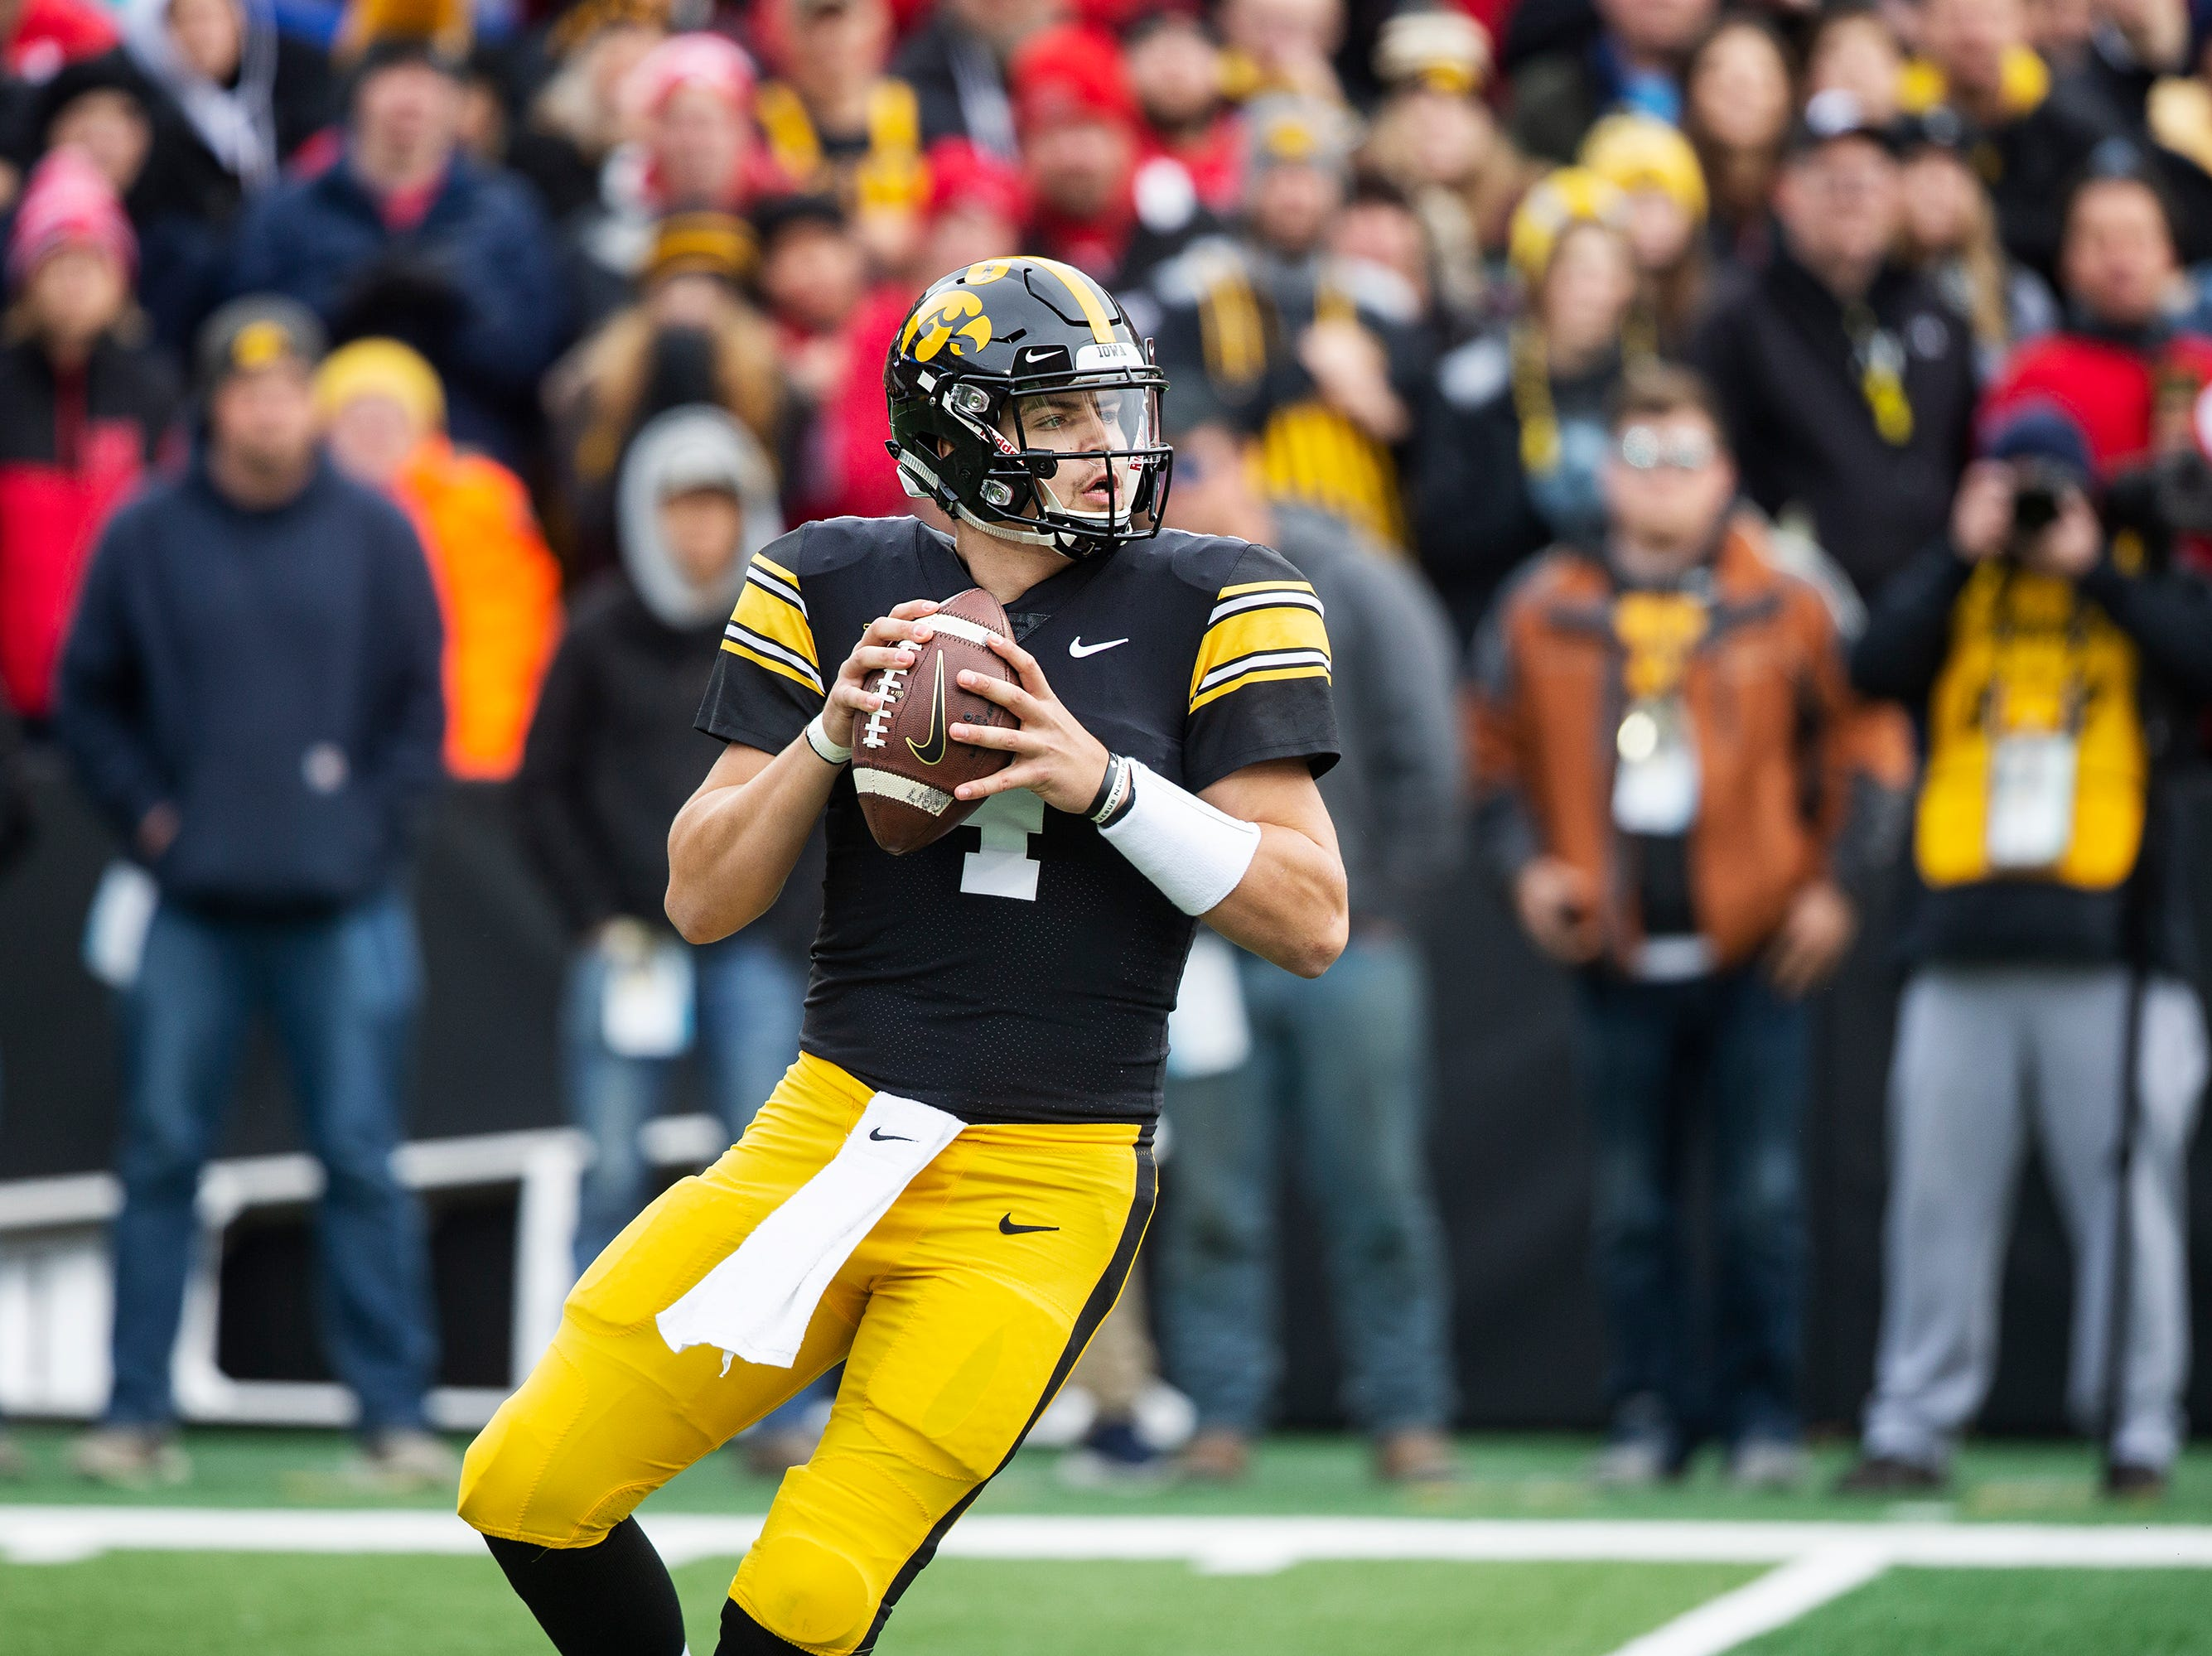 Iowa quarterback Nate Stanley passes the ball during the senior day match-up between the Iowa Hawkeyes and the Nebraska Cornhuskers on Friday, Nov. 23, 2018, at Kinnick Stadium, in Iowa City.